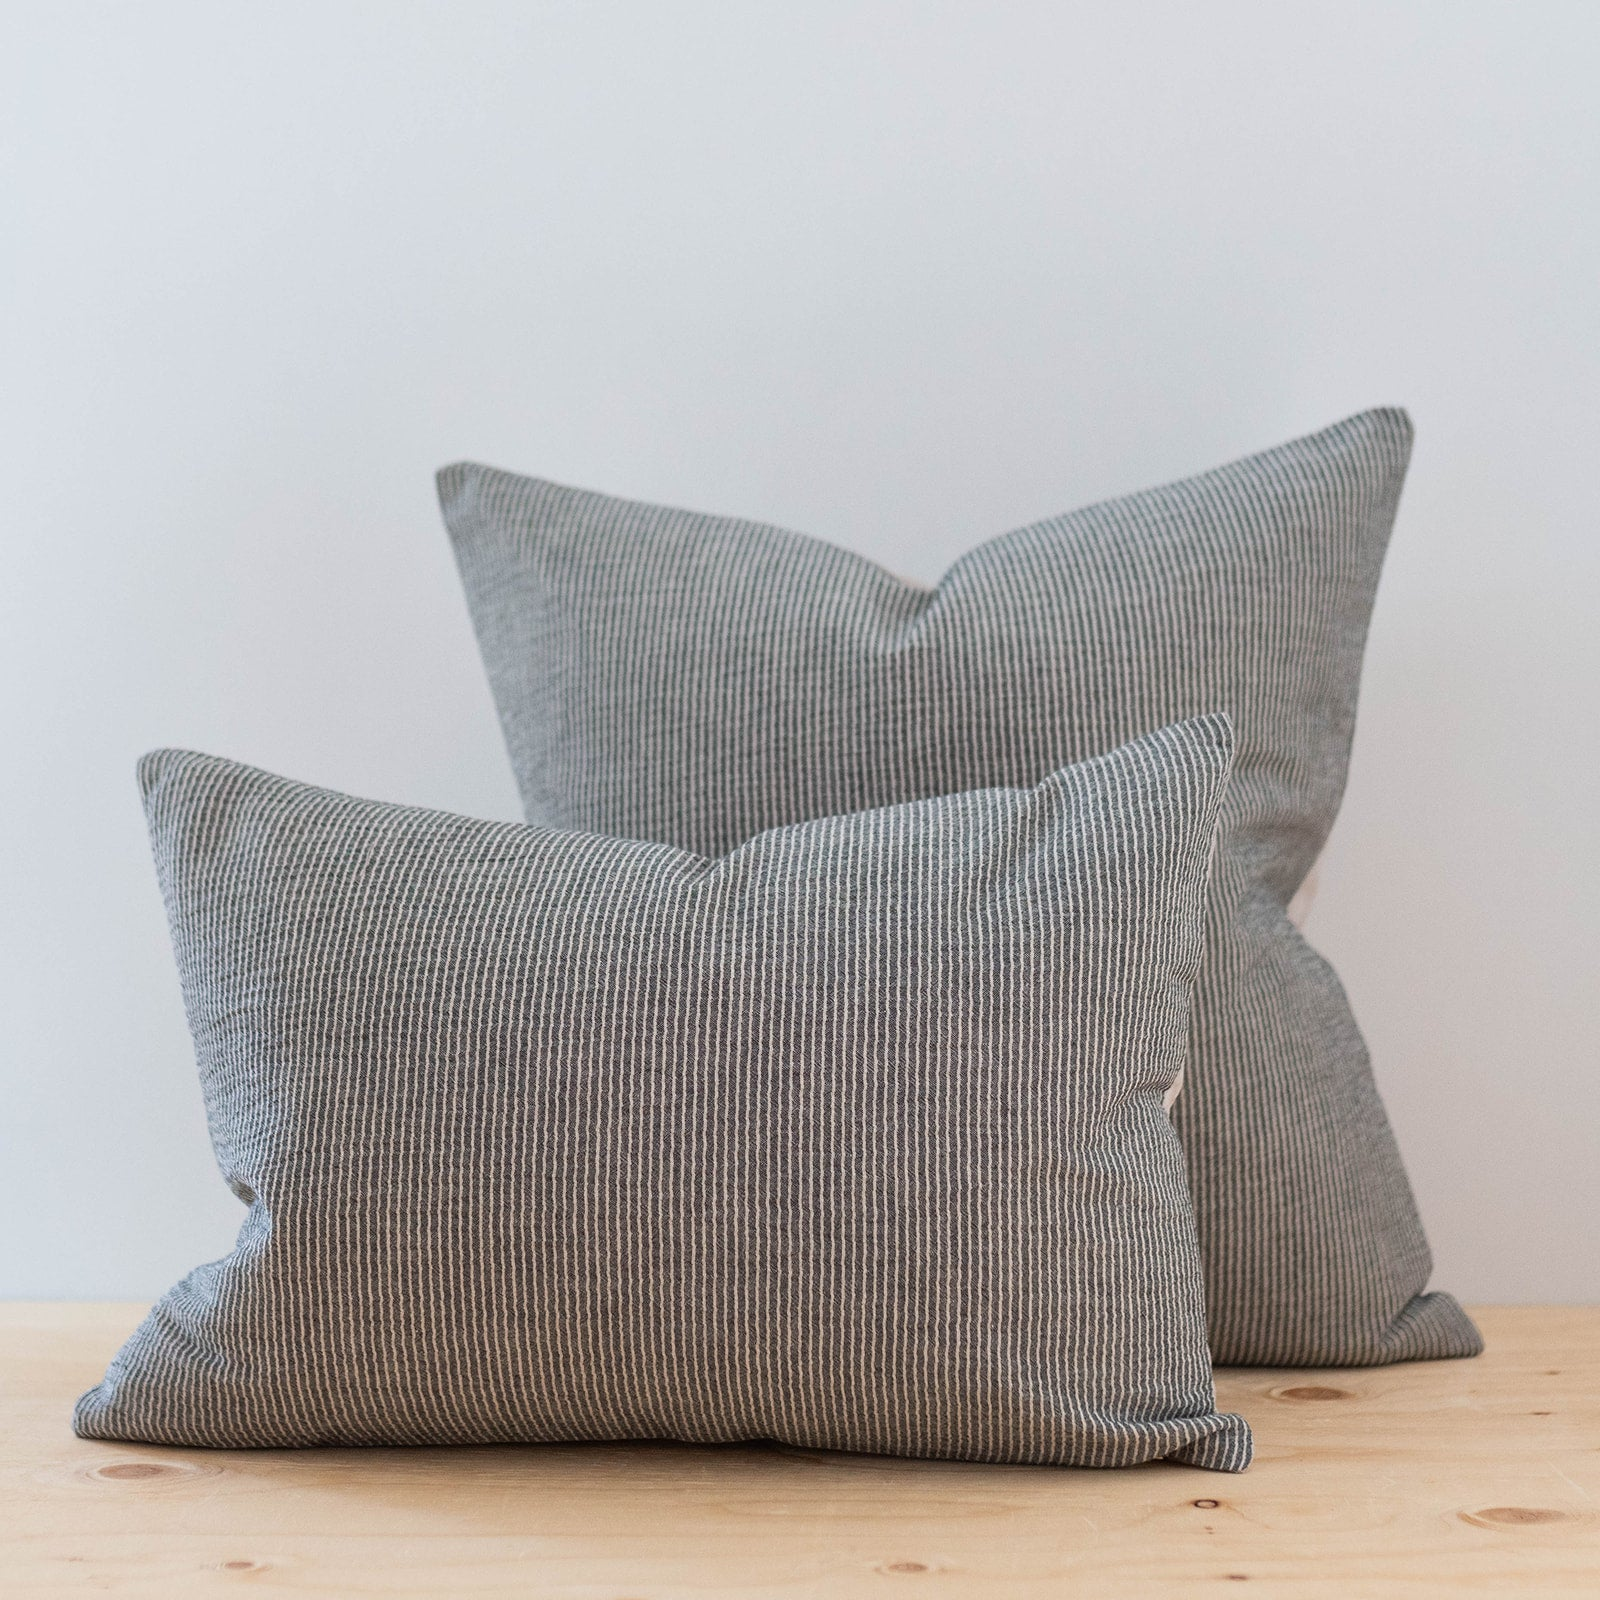 Bamboo Utensil Travel Set - Rug & Weave